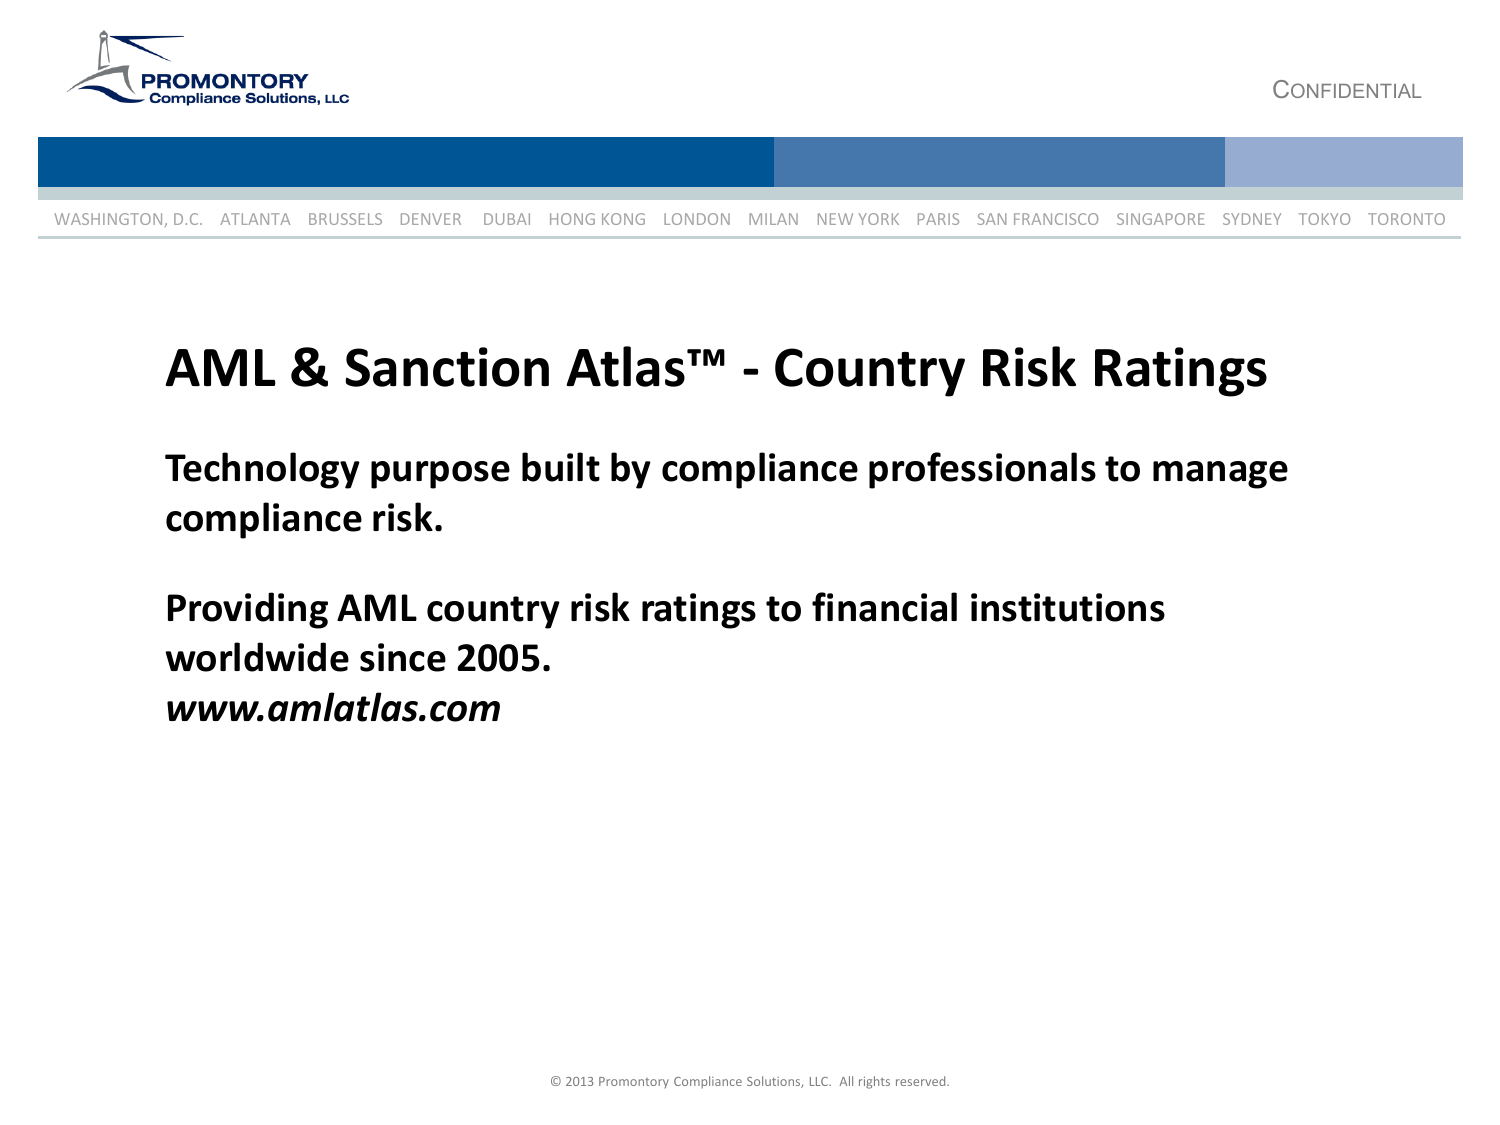 AML & Sanction Atlas™ - Country Risk Ratings